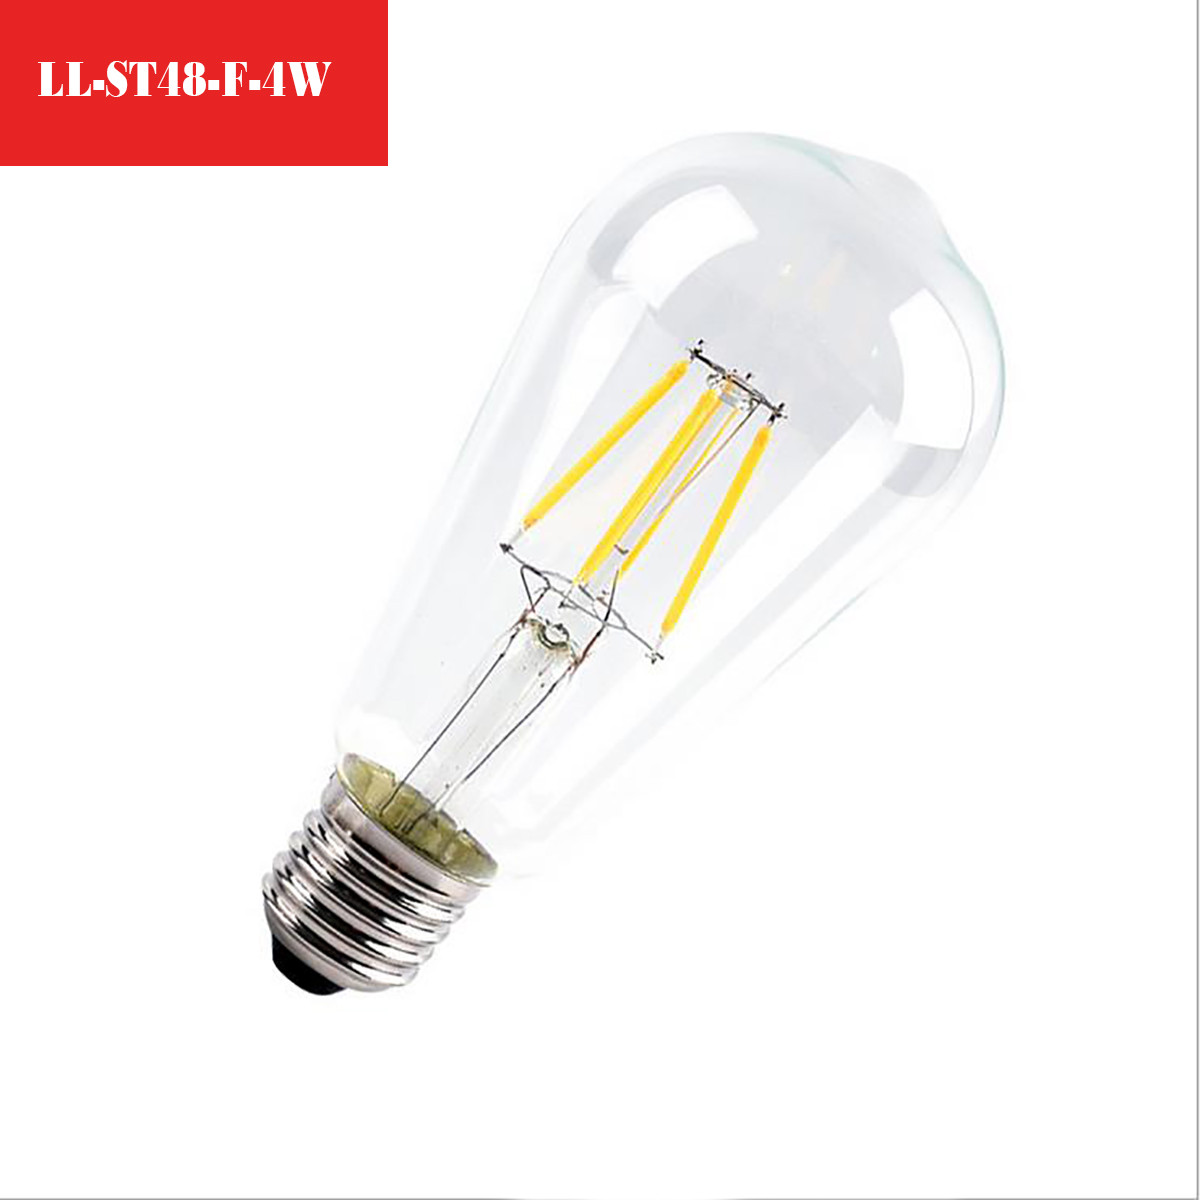 4W Filament LED T-Shape Light Bulb Light ST48 Chandelier Bulb with E26 Base 40W Equivalent Halogen Replacement